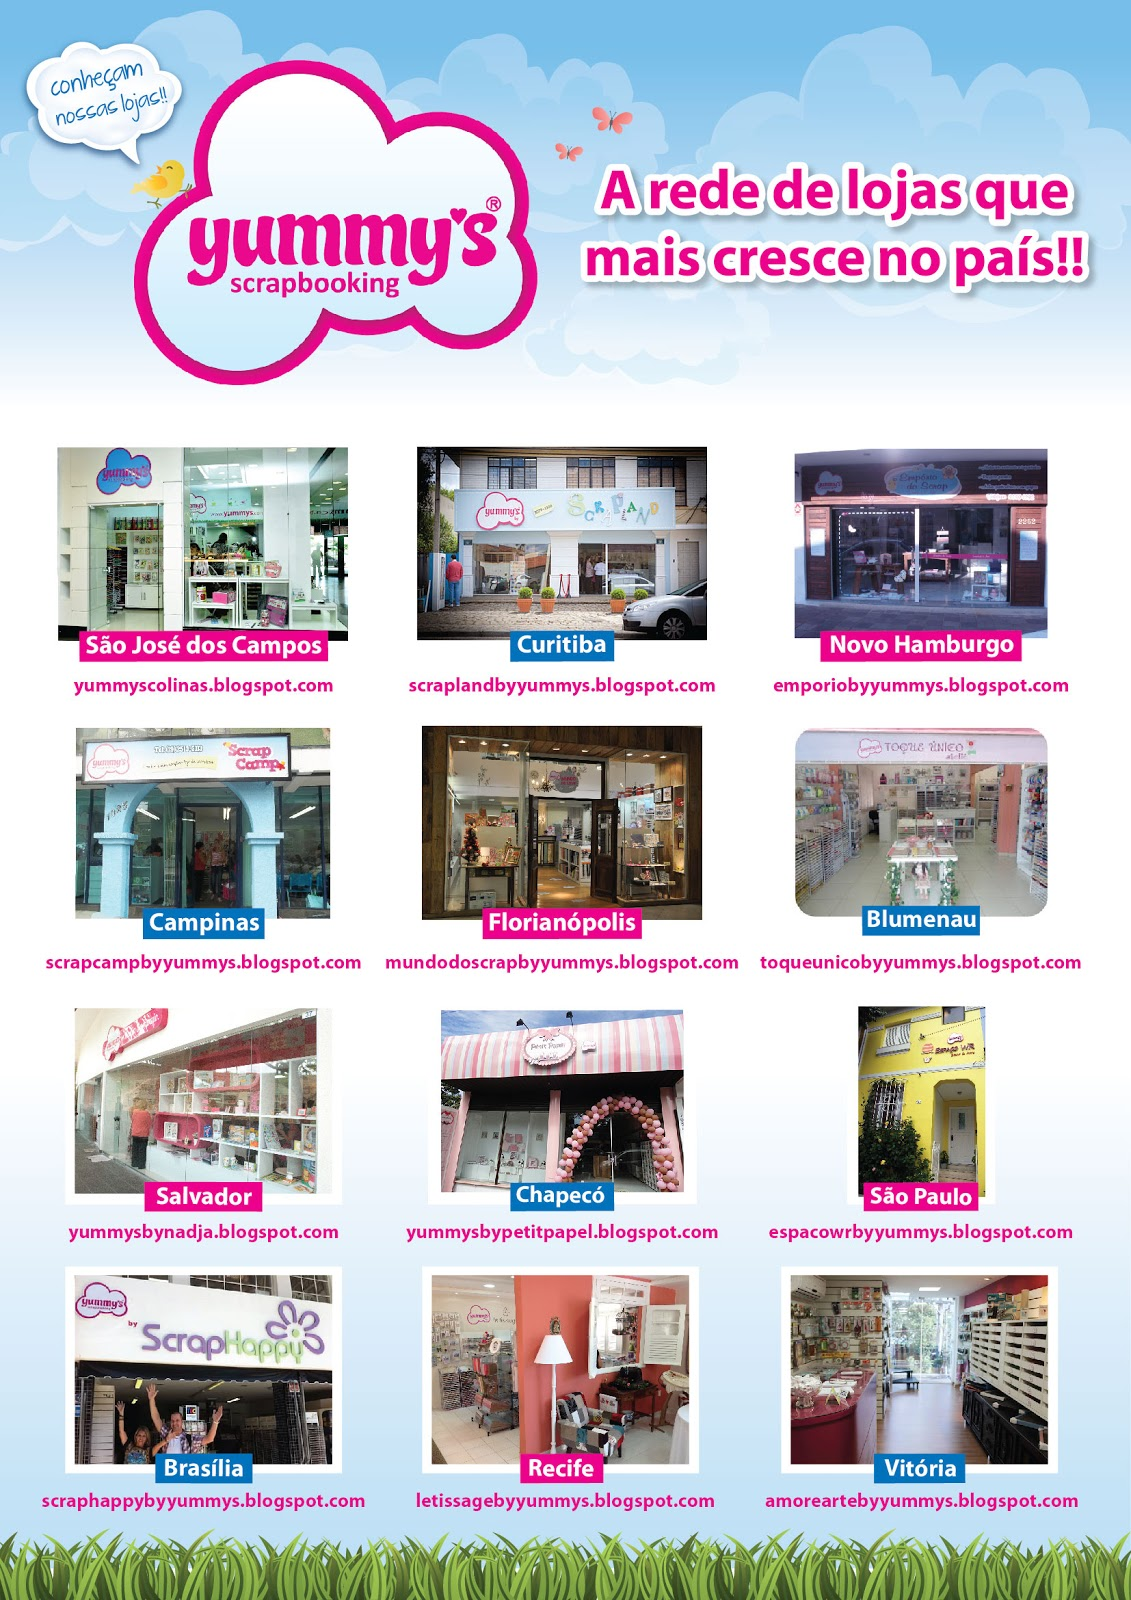 15c1b380178 Yummy s also invested in the online business doing a partnership with an  American company and it has leveraged Yummy´s to the preferred online  scrapbooking ...